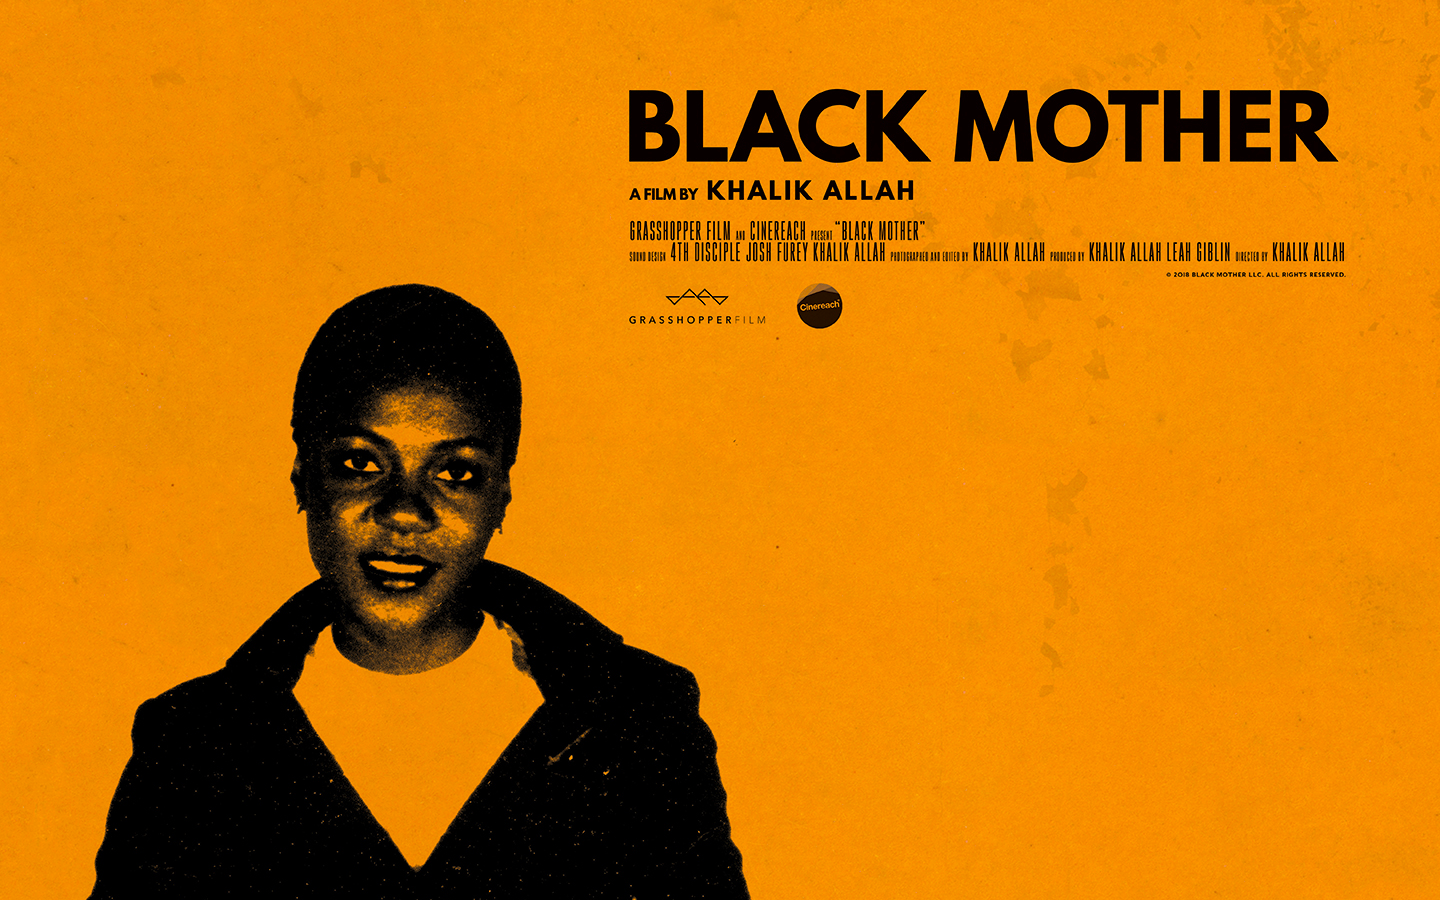 Black Mother movie poster - Fonts In Use